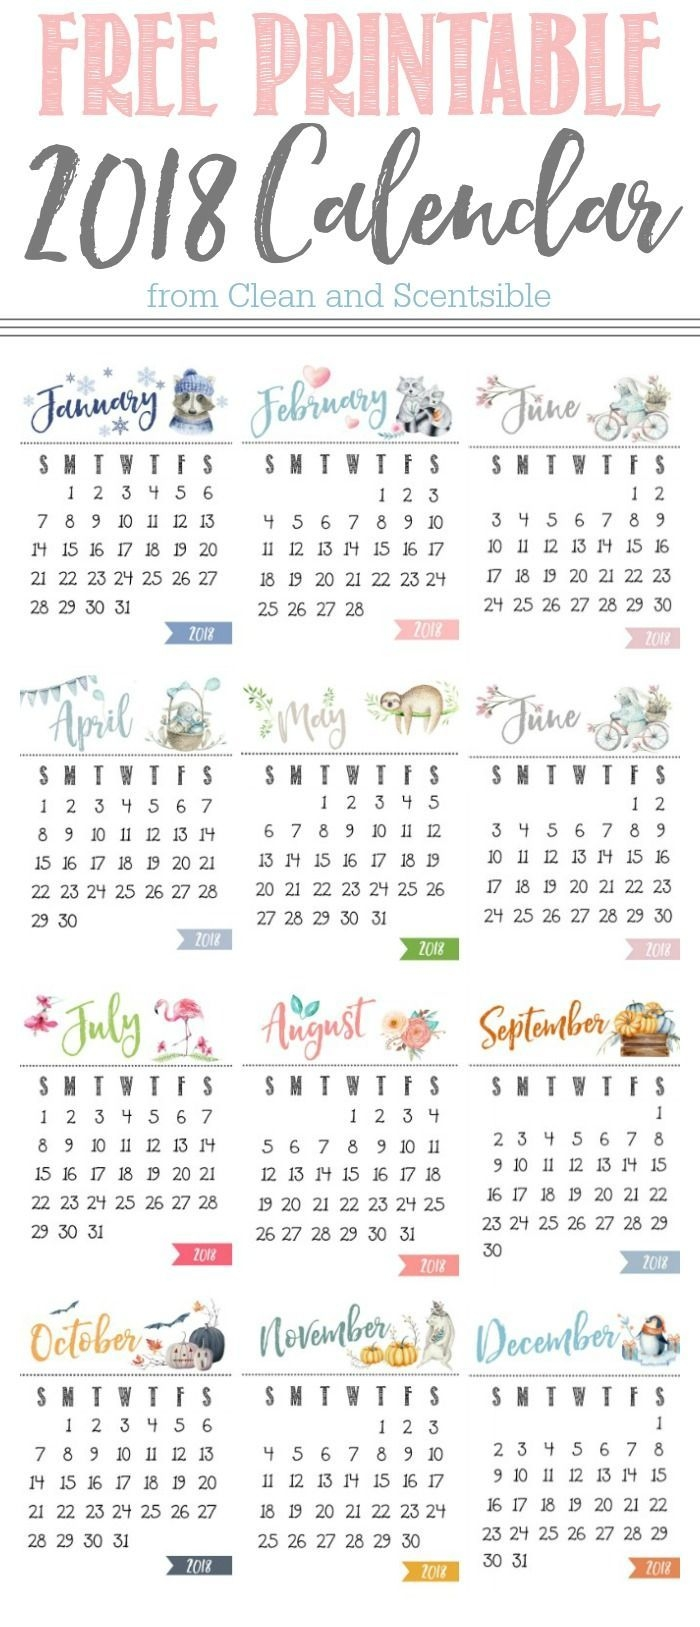 free printable calendar pinterest yearly clipboards and free 2018 Printable Calendar Pretty By Year erdferdf